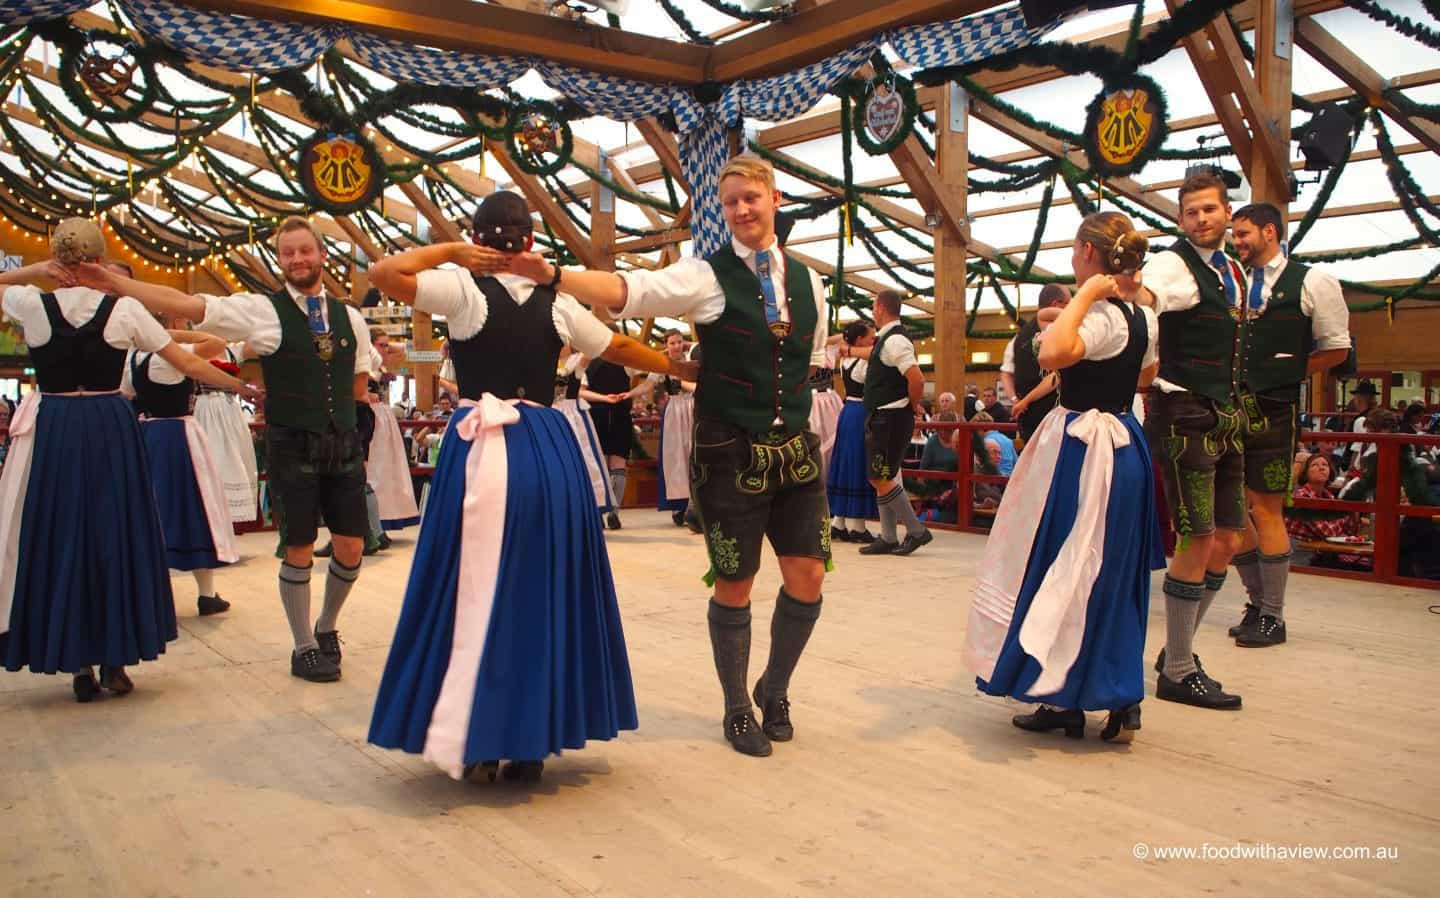 Bavarian dancing traditional